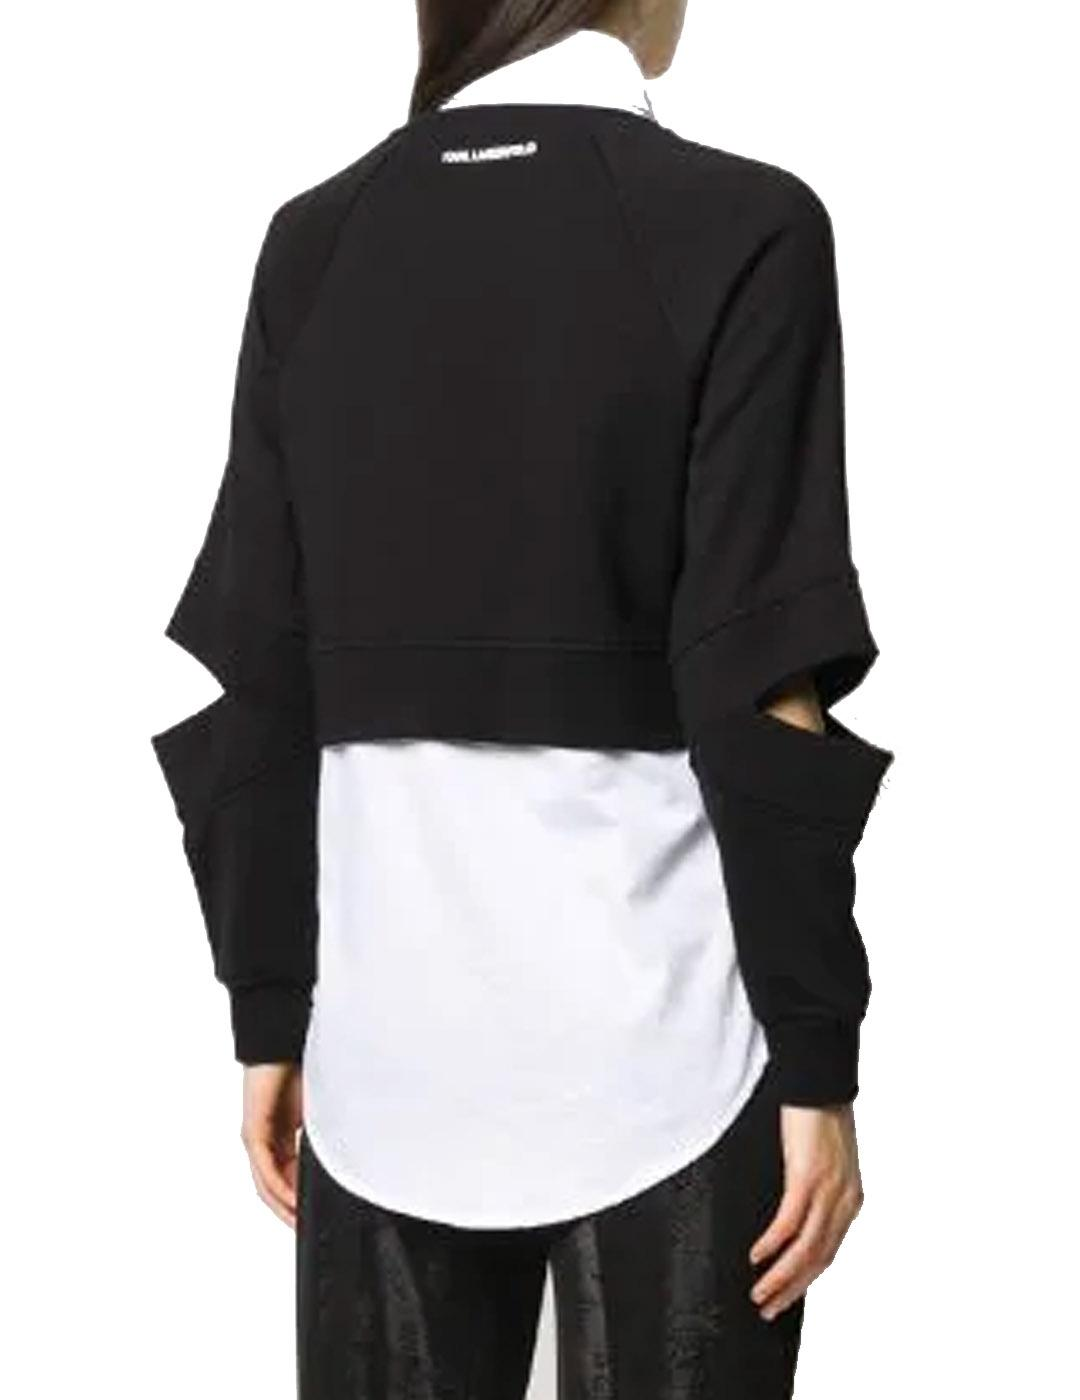 Sudadera Karl Lagerfeld negra Double Layer Fabric Mix